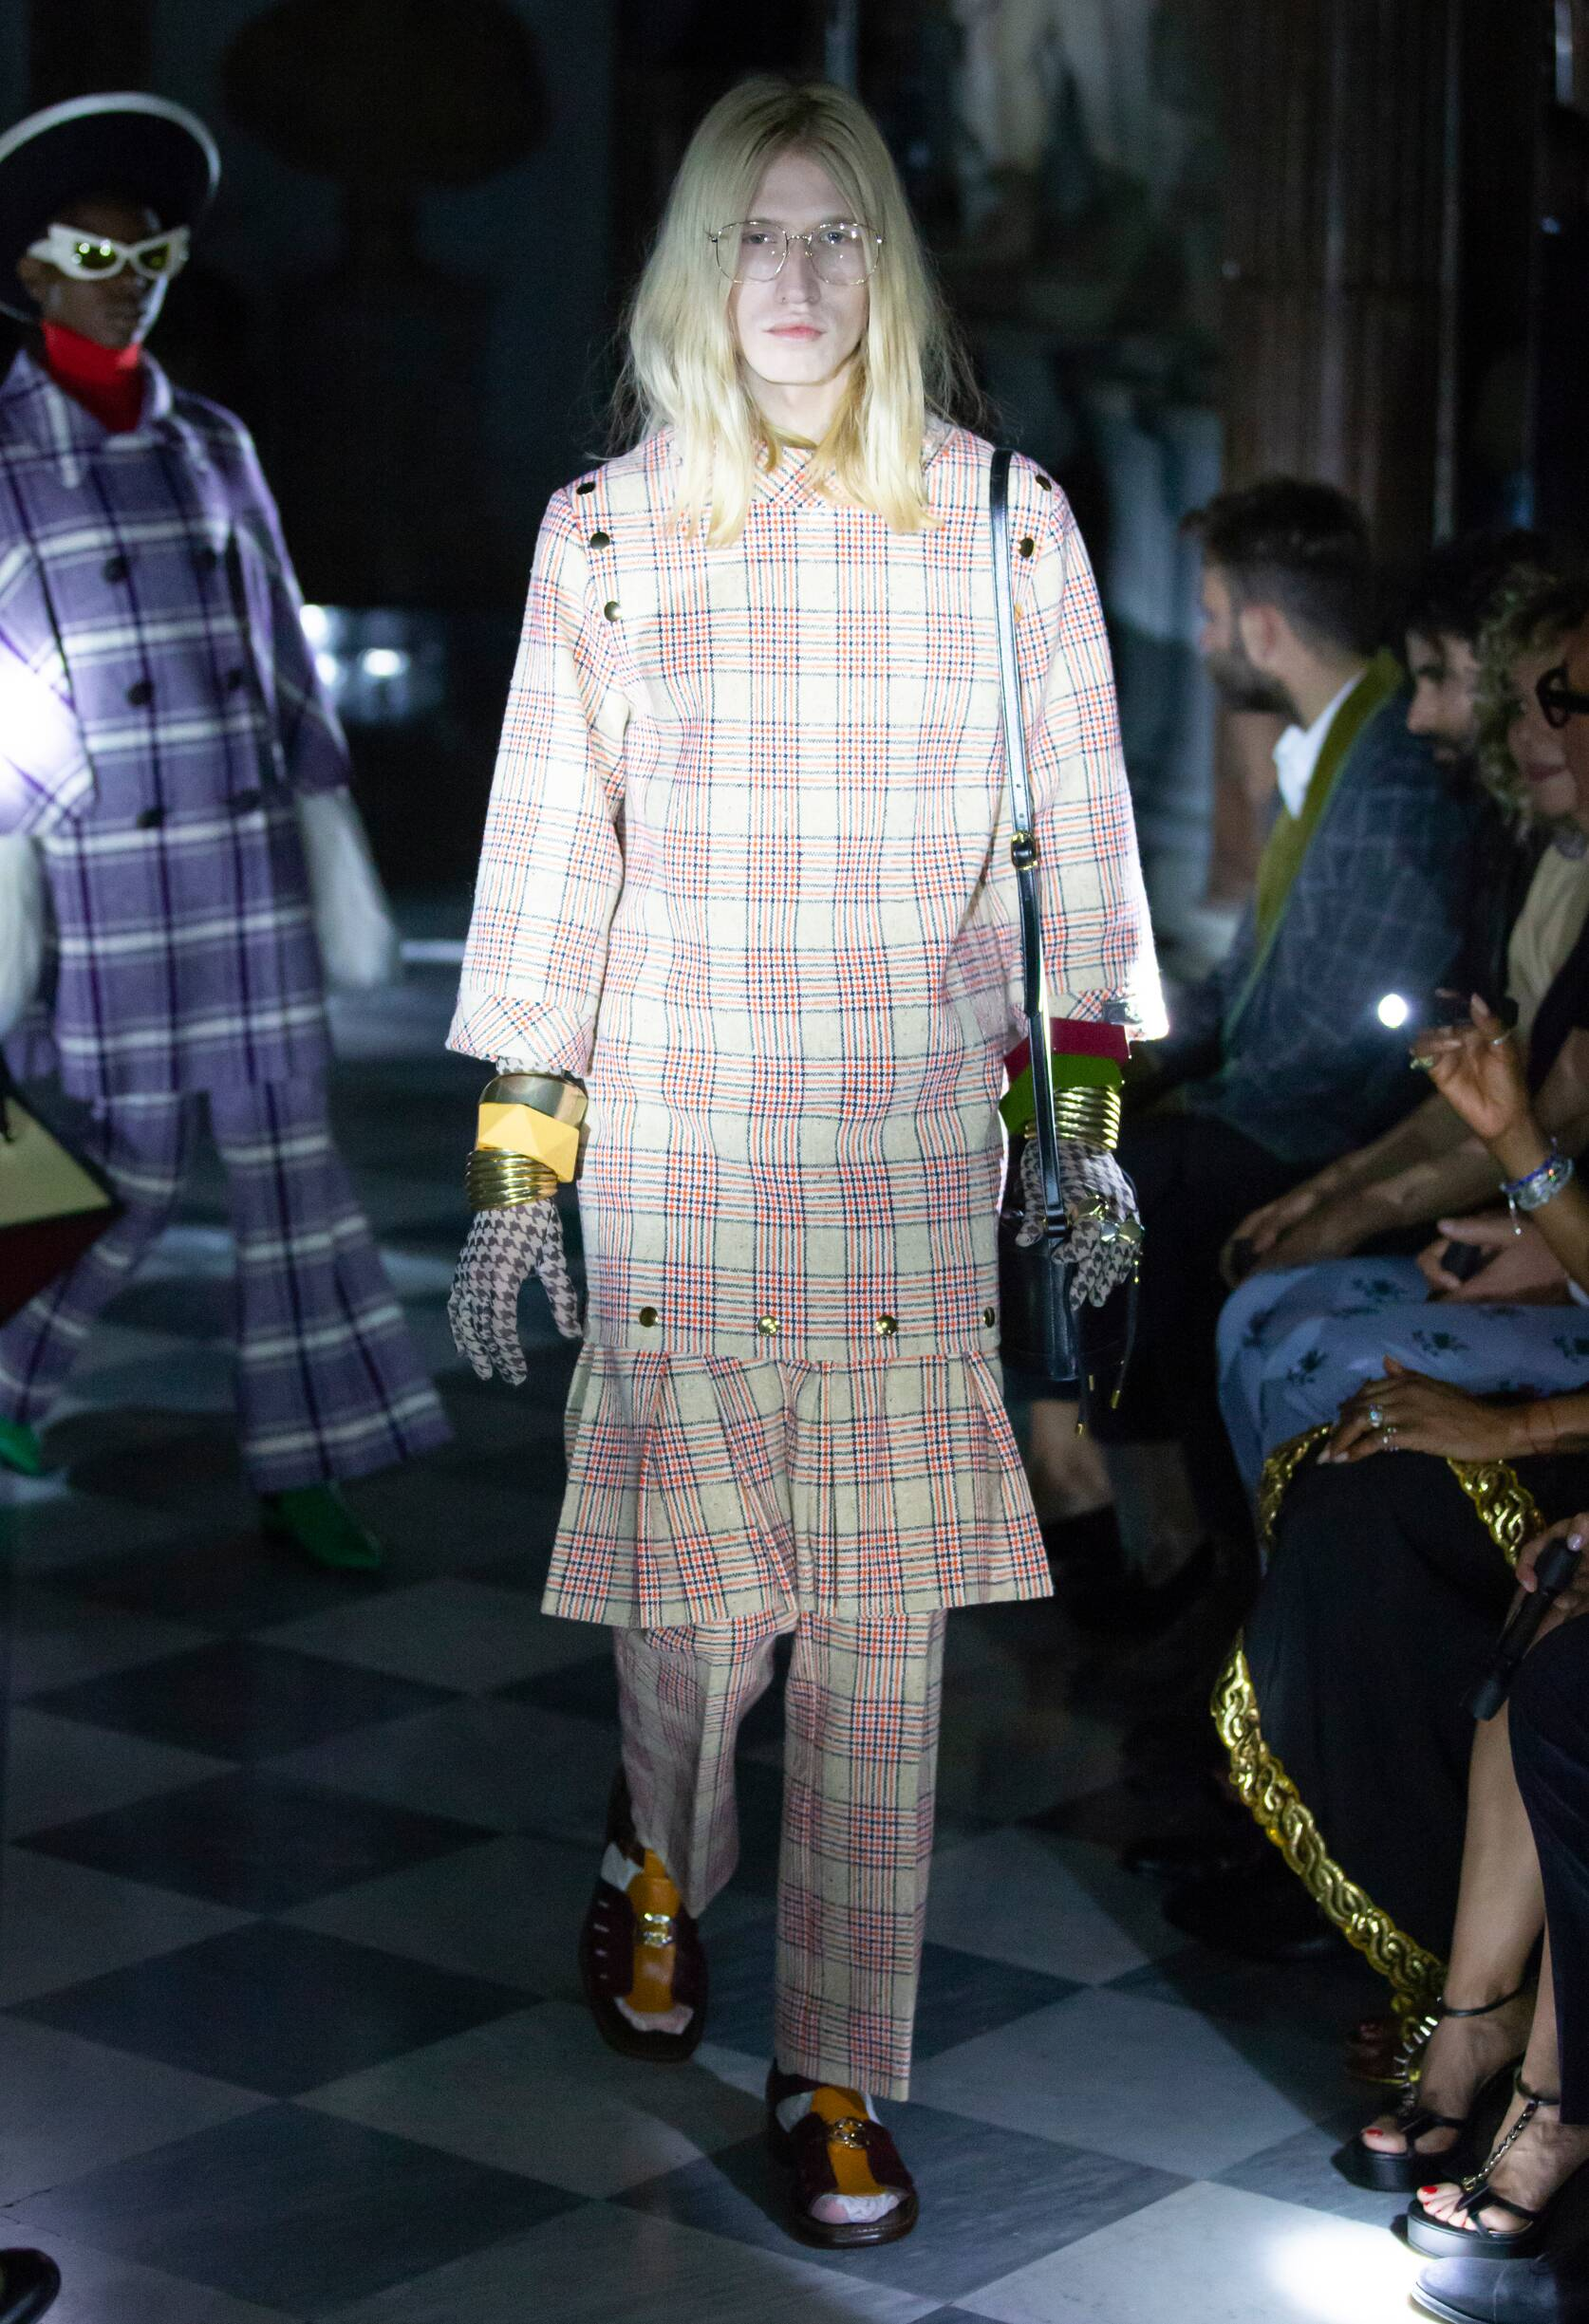 Gucci Cruise 2020 Collection Look 4 Rome